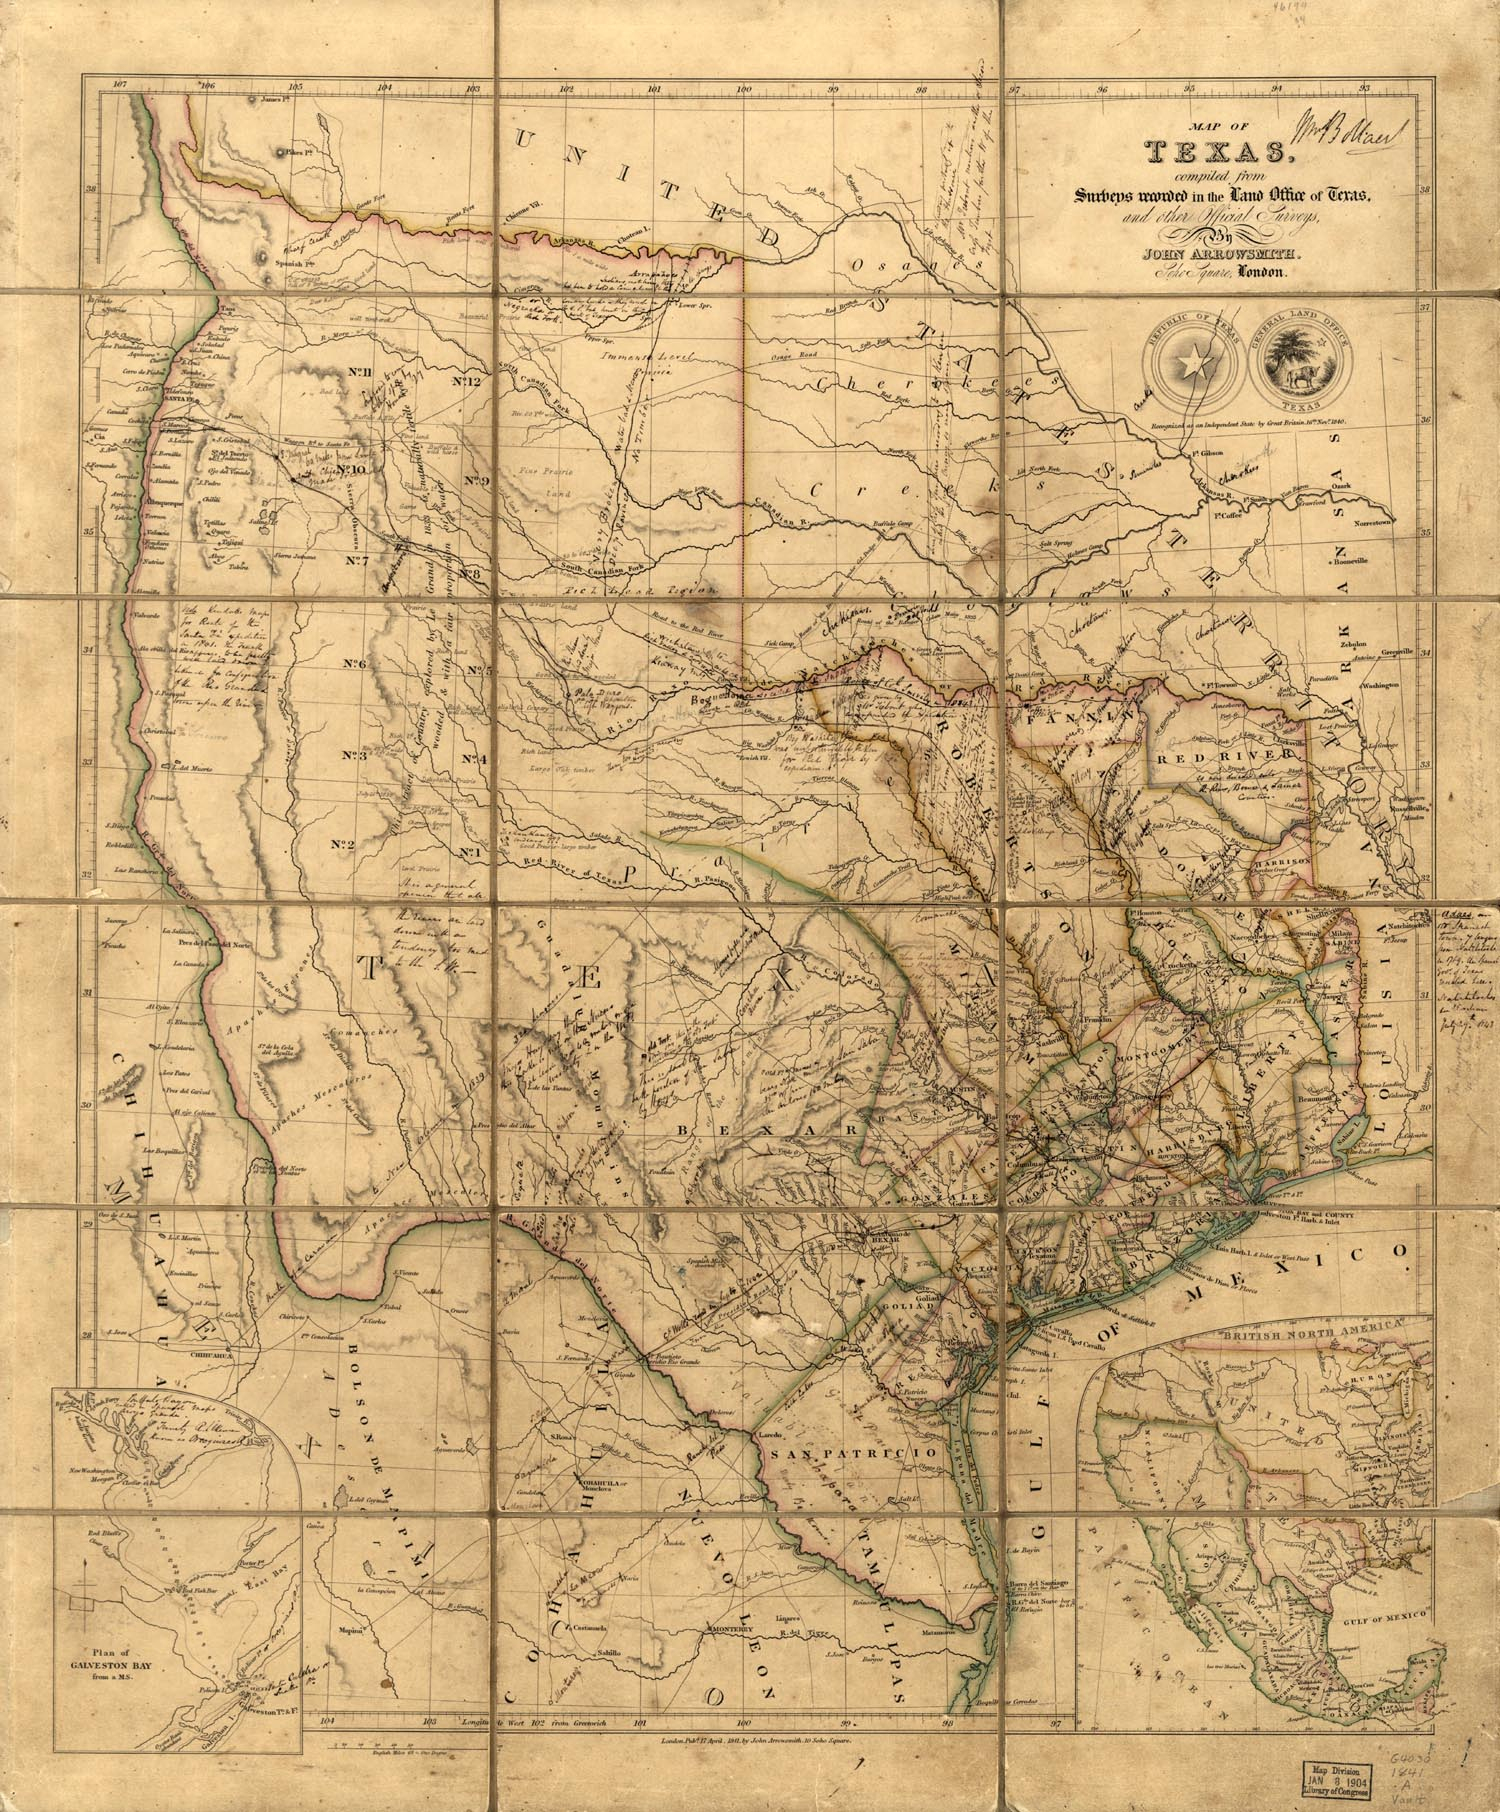 Maps Of The Republic Of Texas - Republic Of Texas Map Overlay